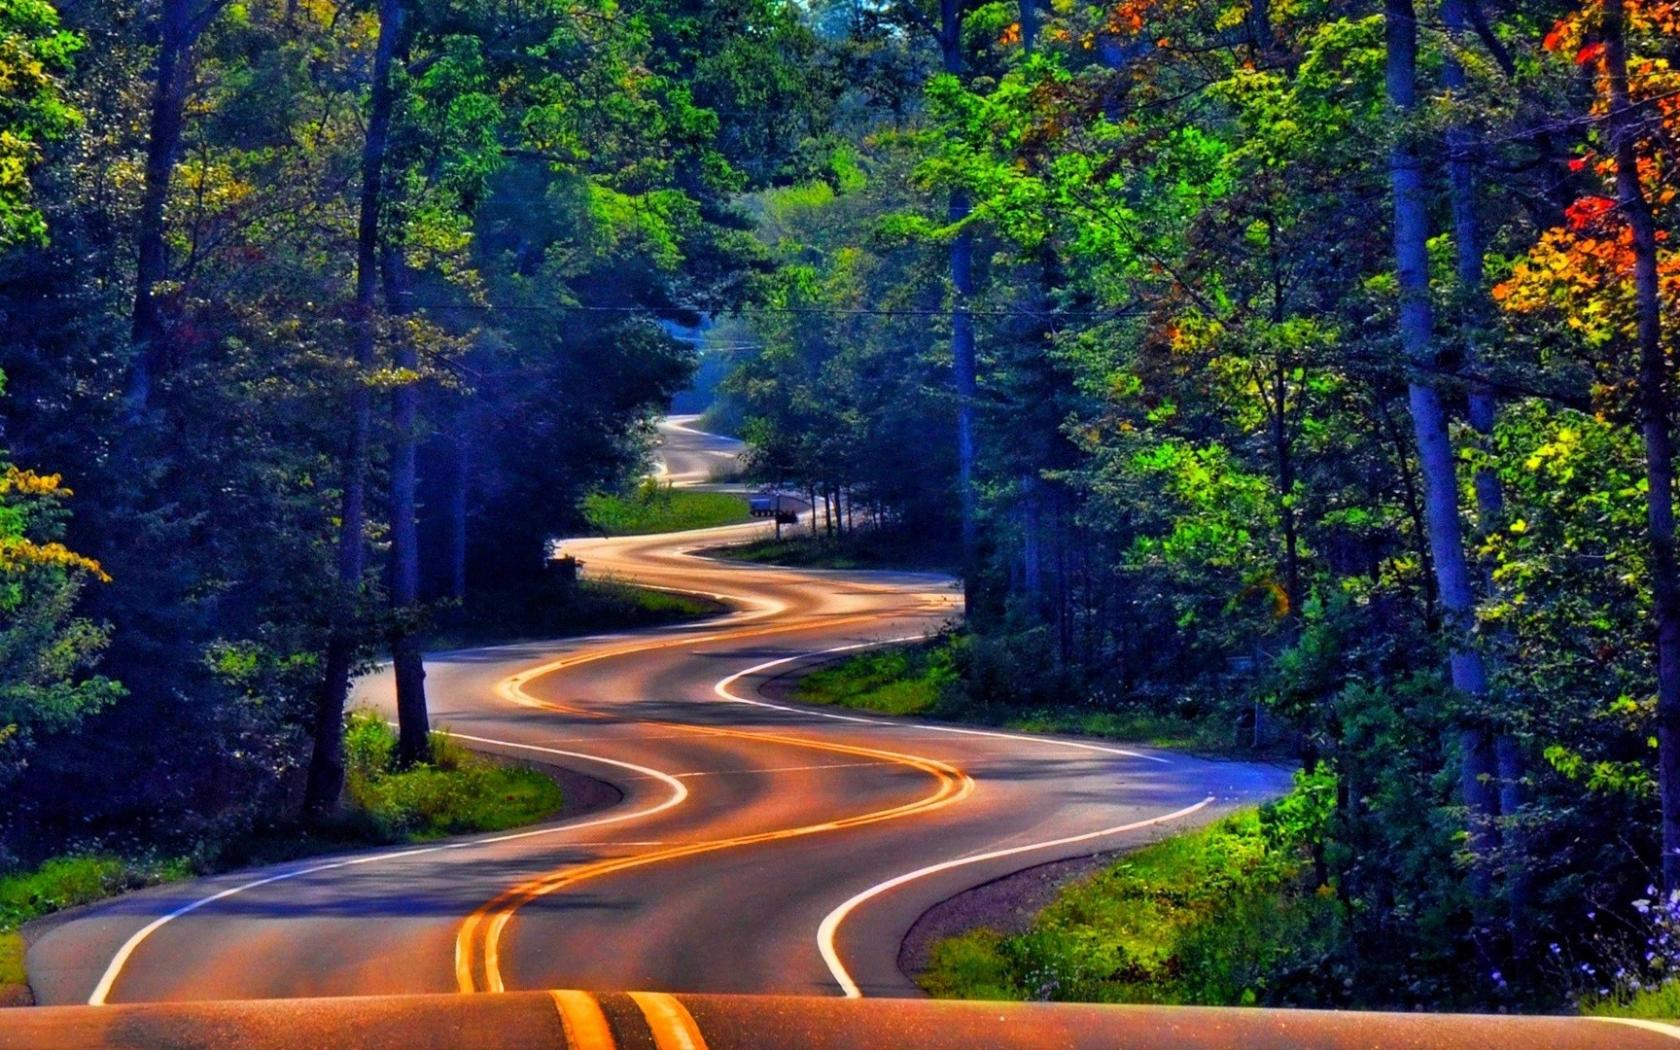 Forest Road Wallpaper for Android